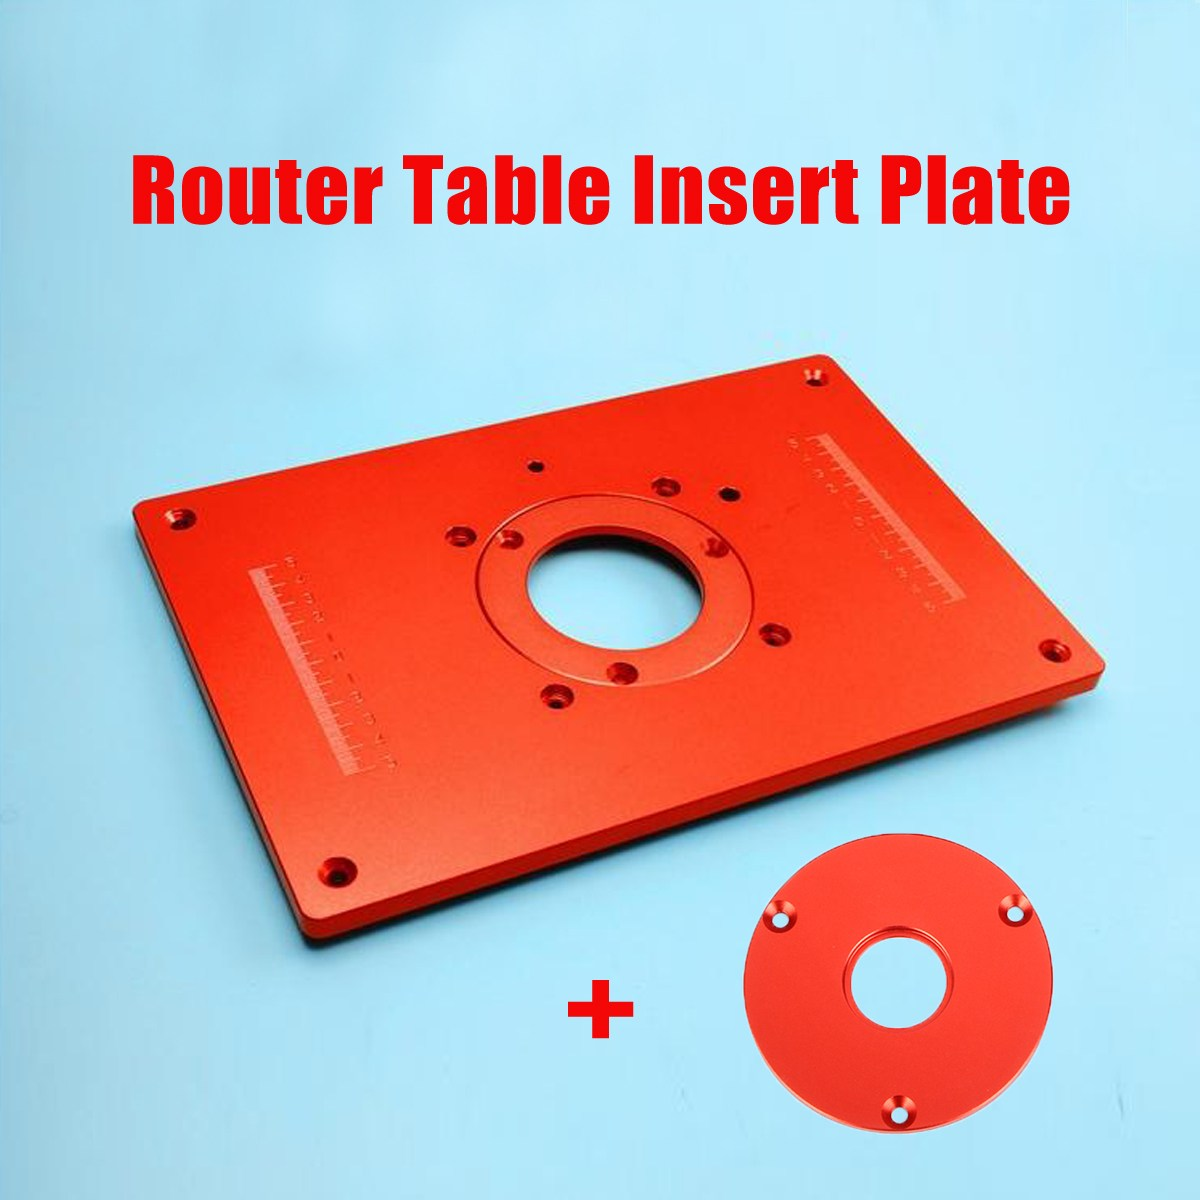 Universal router table insert plate aluminium alloy for diy universal router table insert plate aluminium alloy for diy woodworking engraving machine 200x300x10mm high quality in wood routers from tools on greentooth Gallery